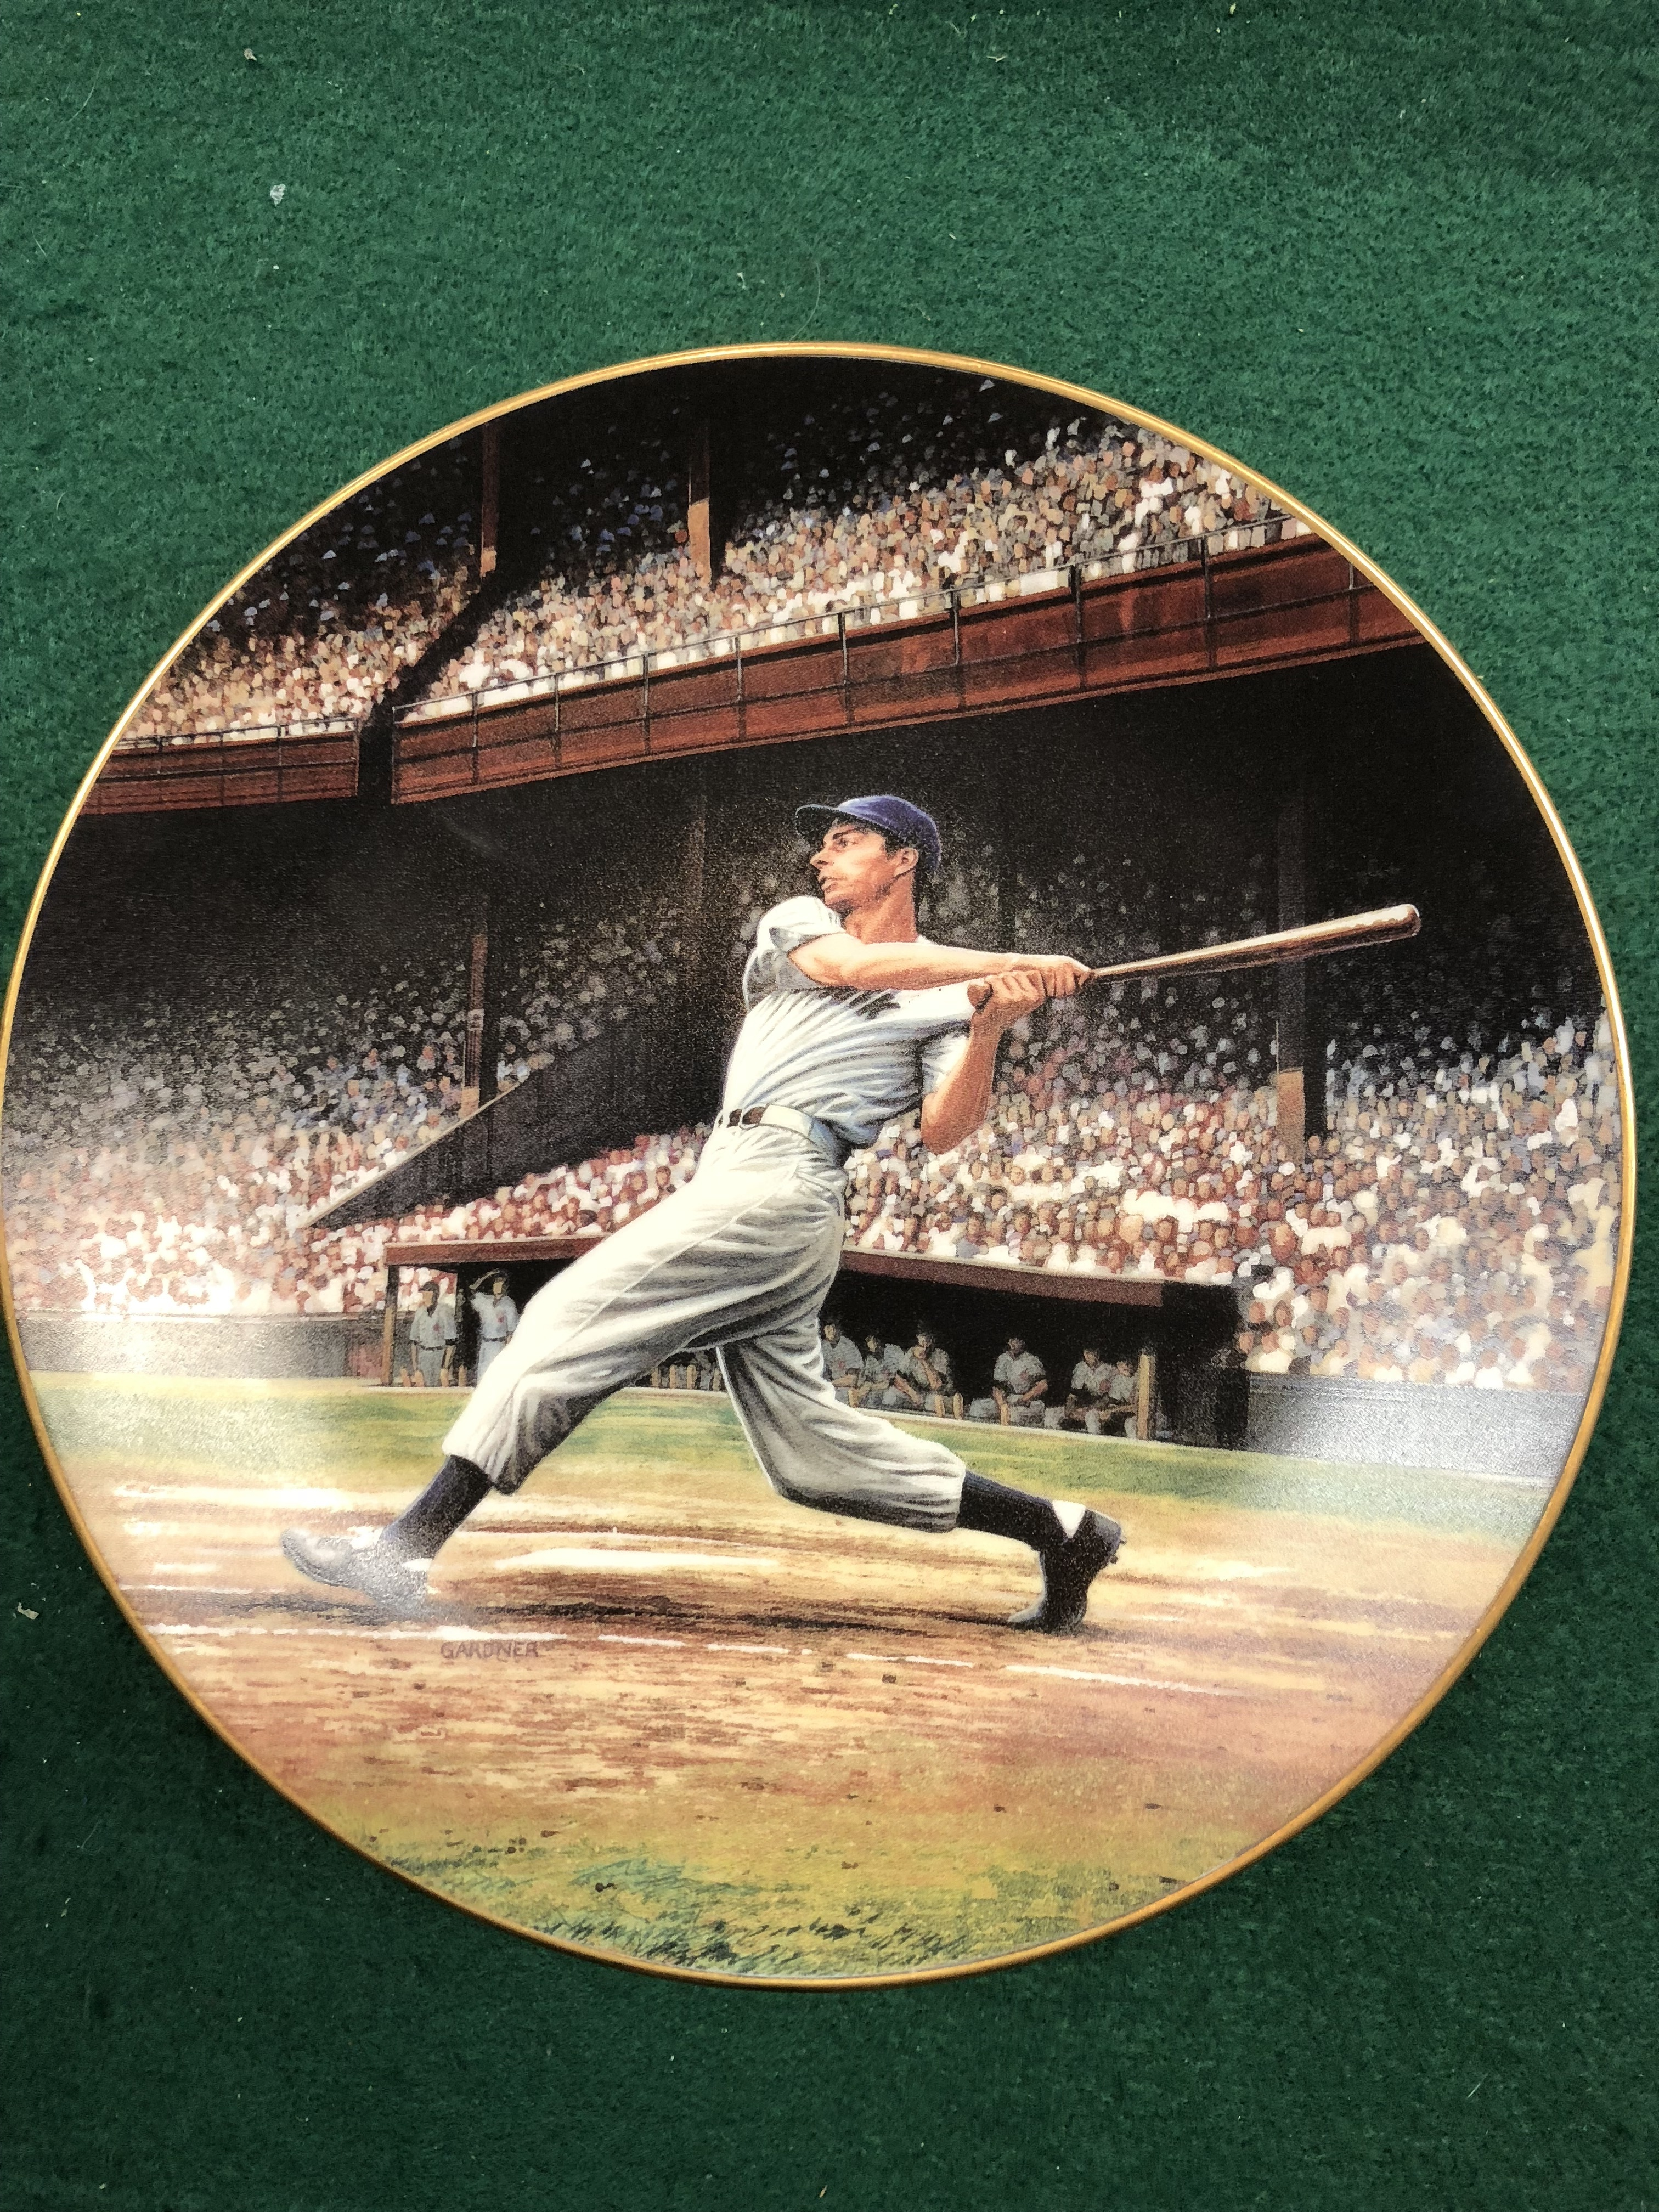 JOE DIMAGGIO THE STREAK 1993 PLATE